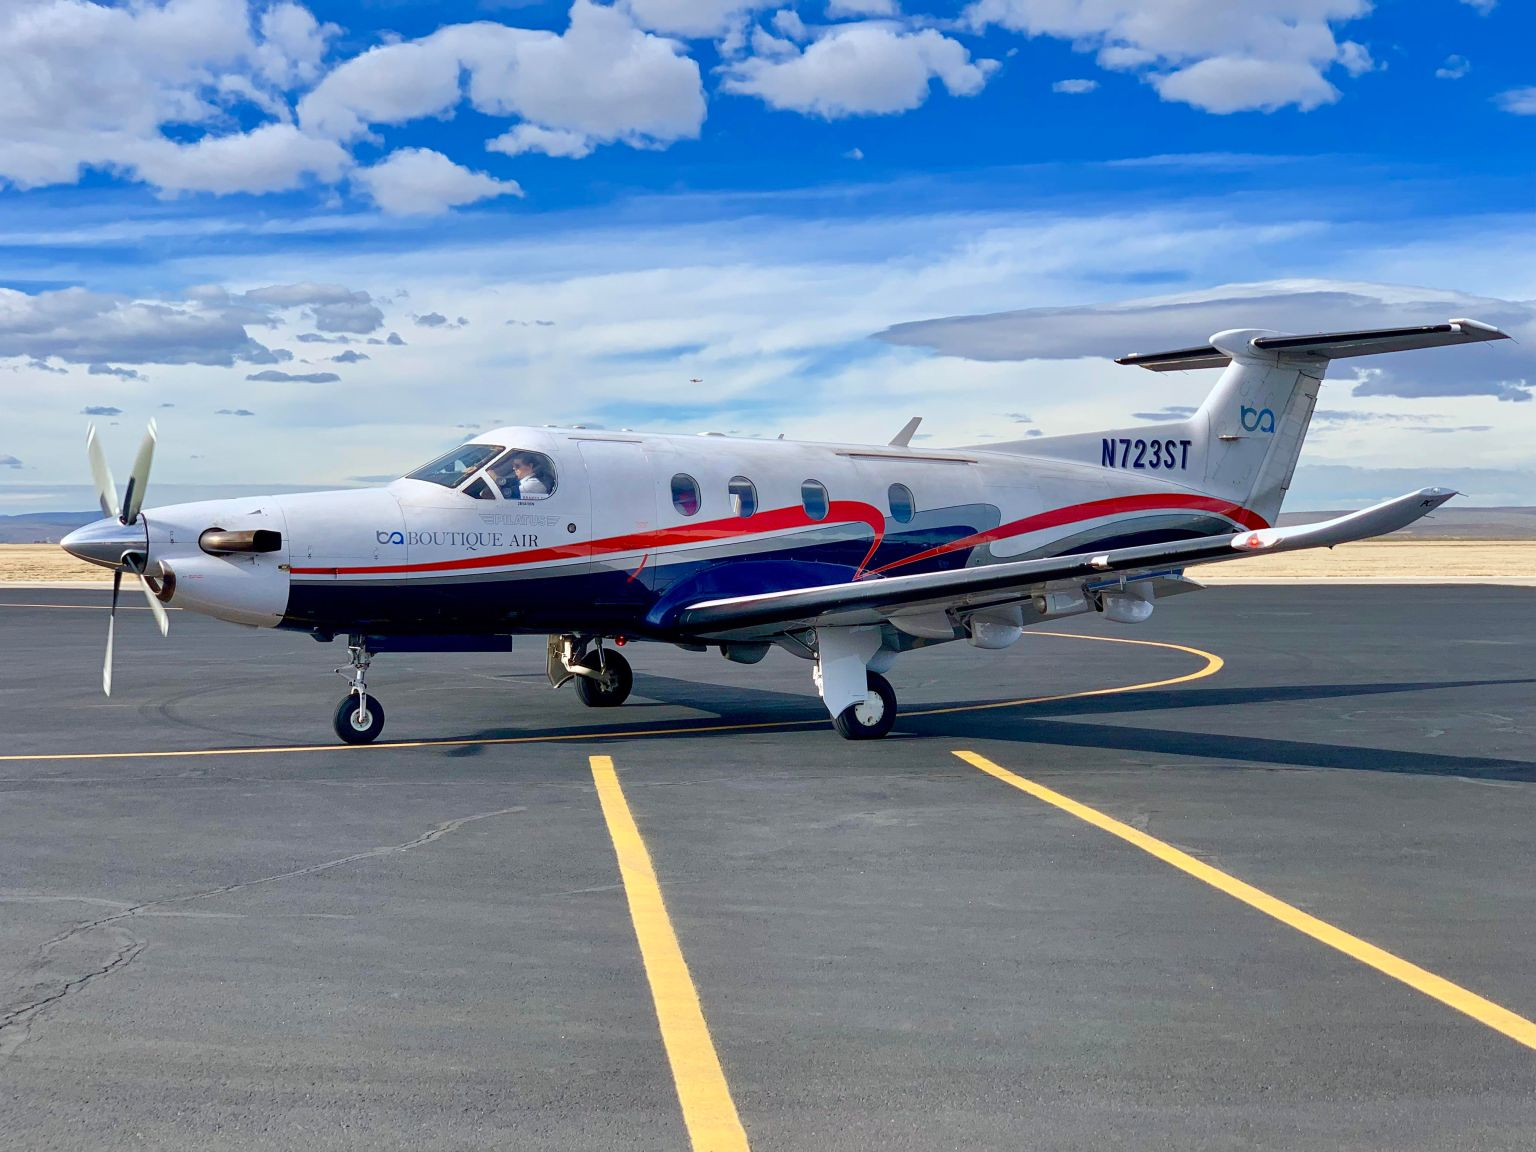 Boutique Air Announces New Flights to Palm Springs Starting Next Month